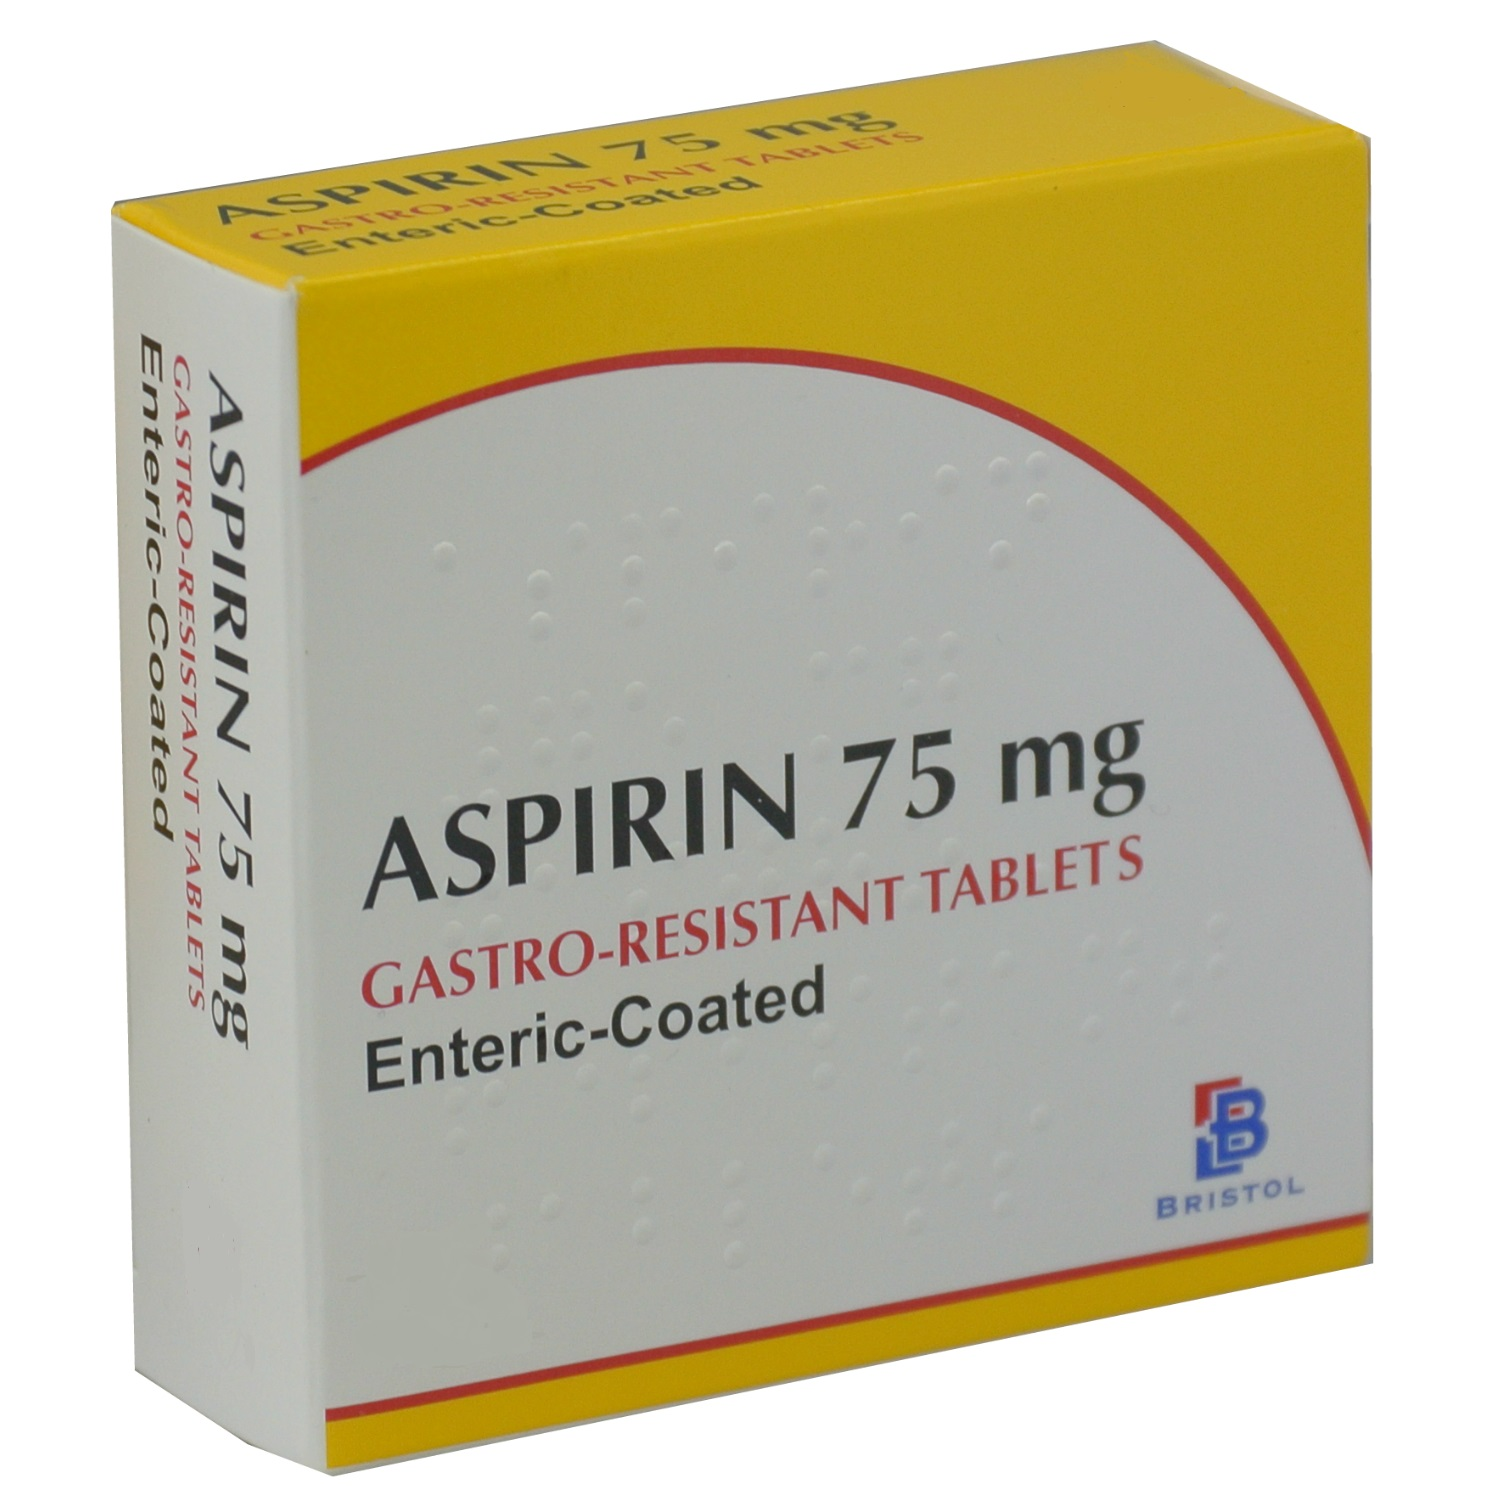 Aspirin gastro-resistant tablets - Doctor answers on ...